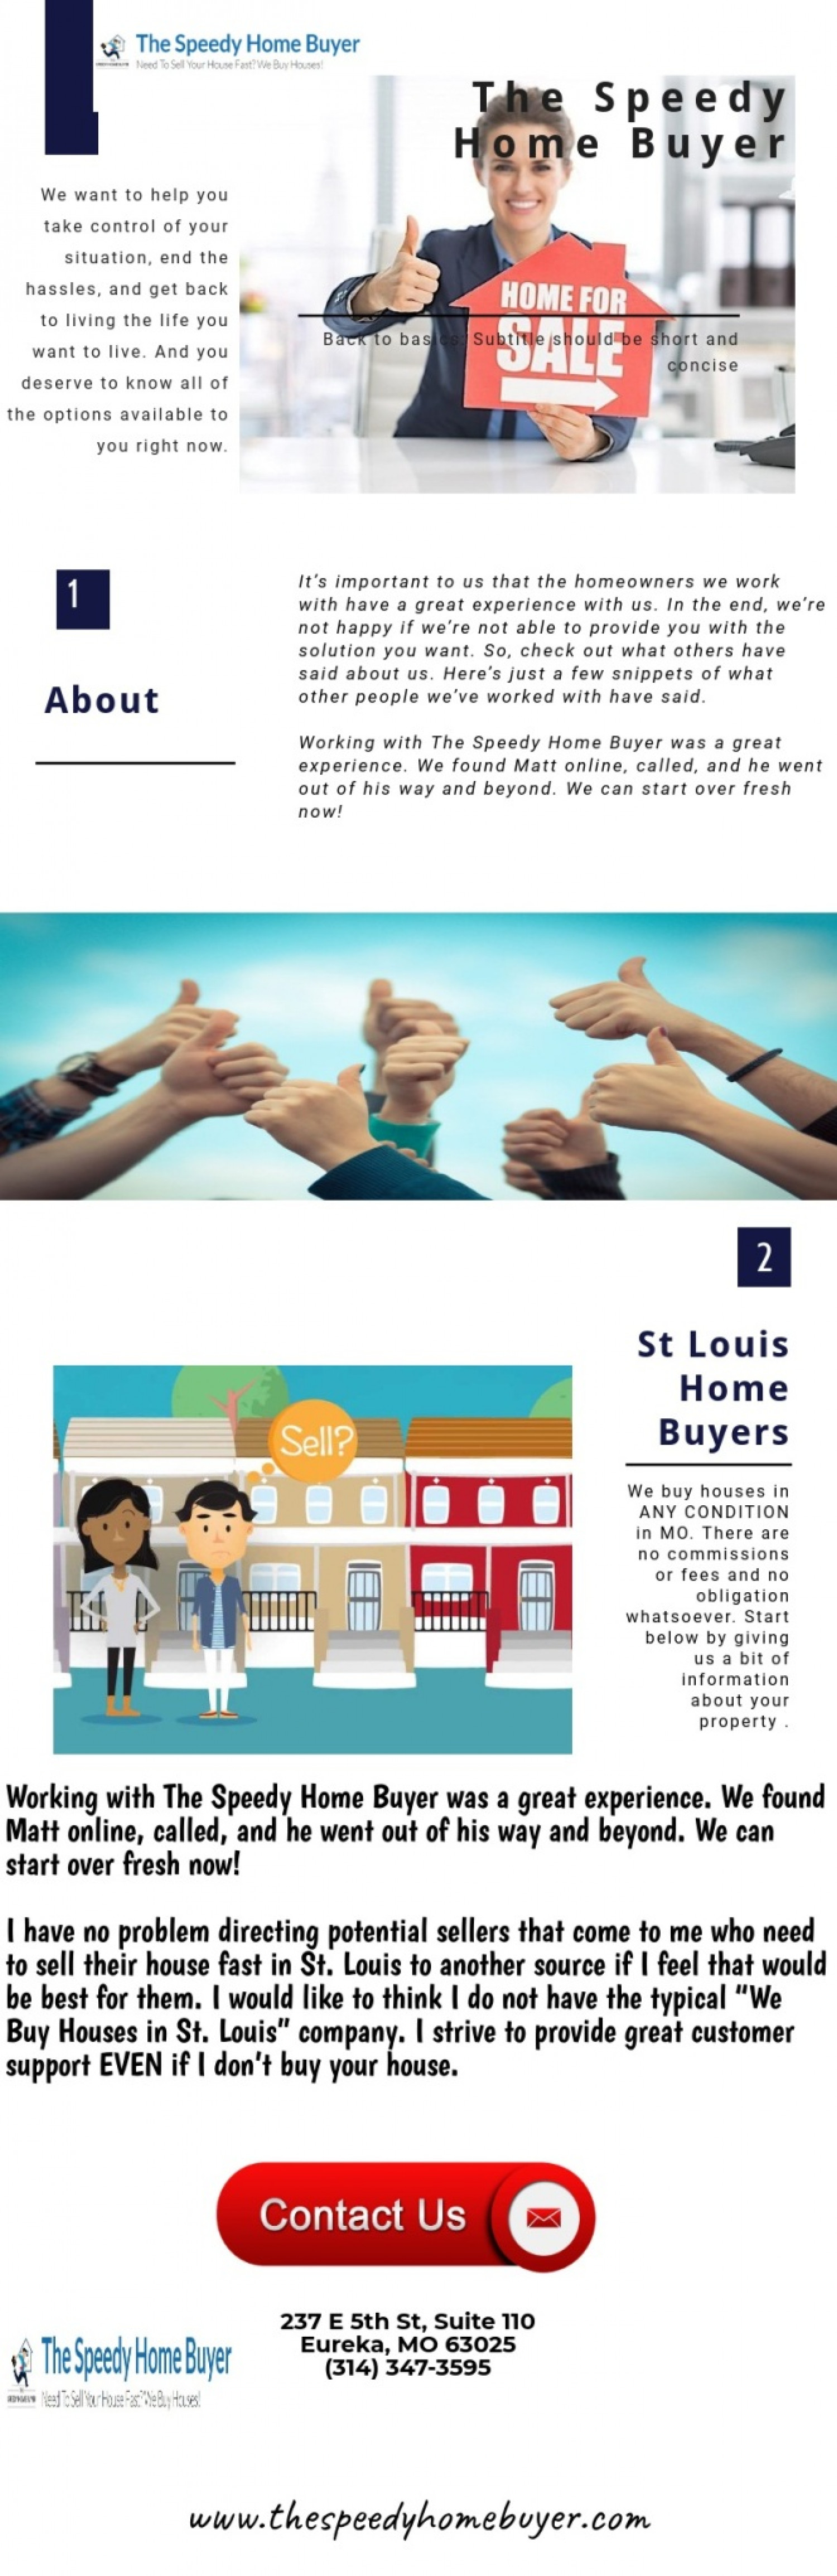 St Louis Home Buyers Infographic